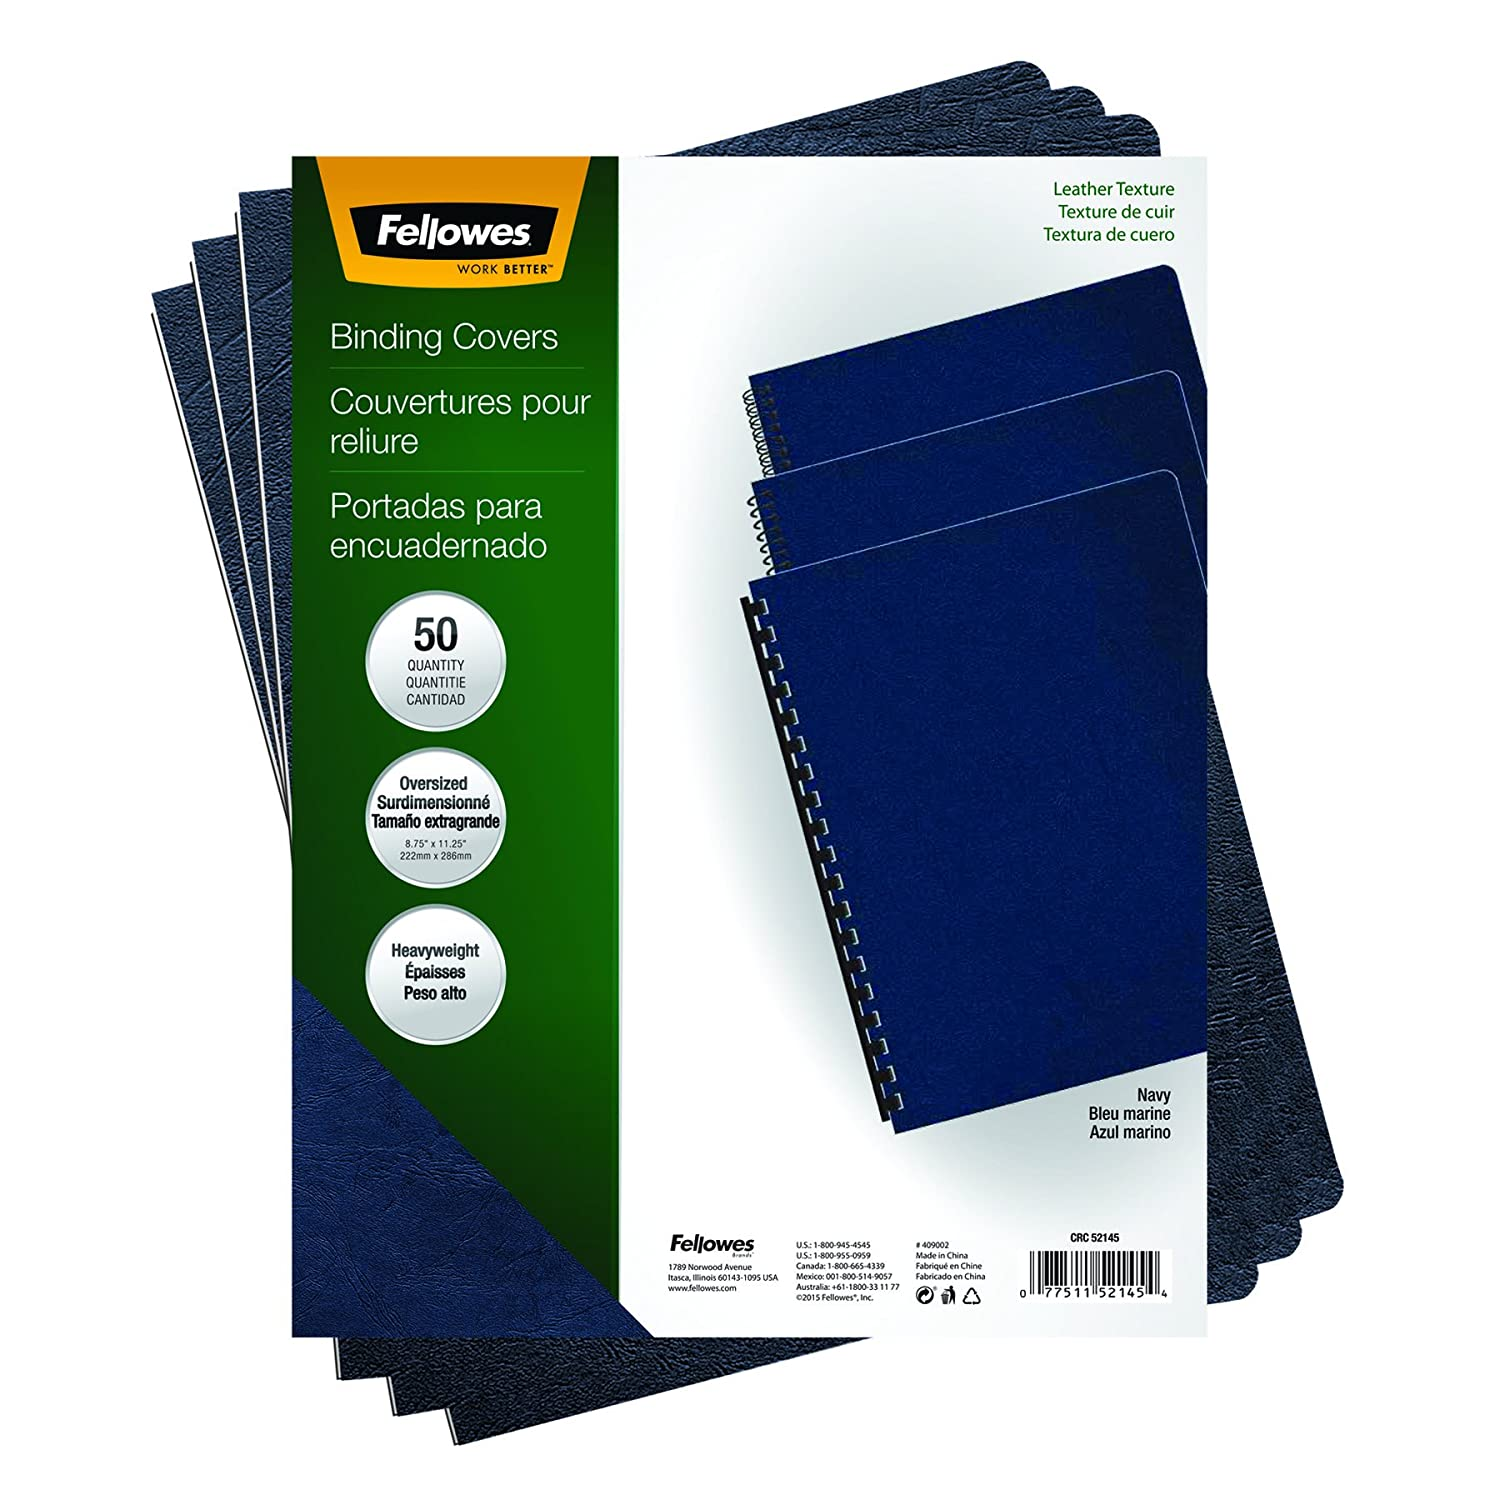 Fellowes Executive Presentation Cover, 11-1/4-Inch x 8-3/4-Inch, 50 Per-Pack, Navy (52145) Office Supplies